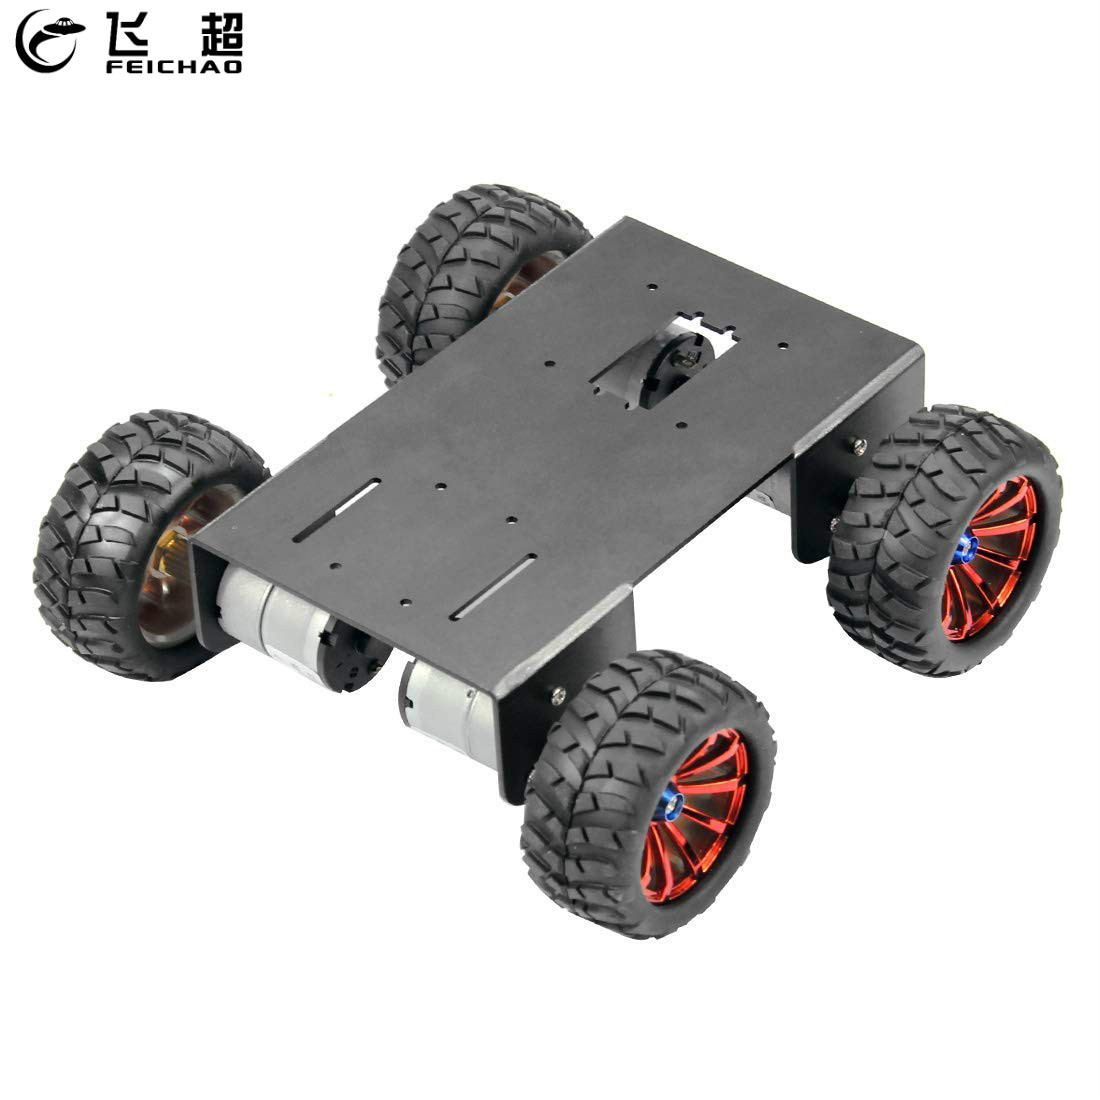 basic Version Useful Multi Chassis 4wd Kit Car Metal Material Plaform Robot Chassis Fancy Colours